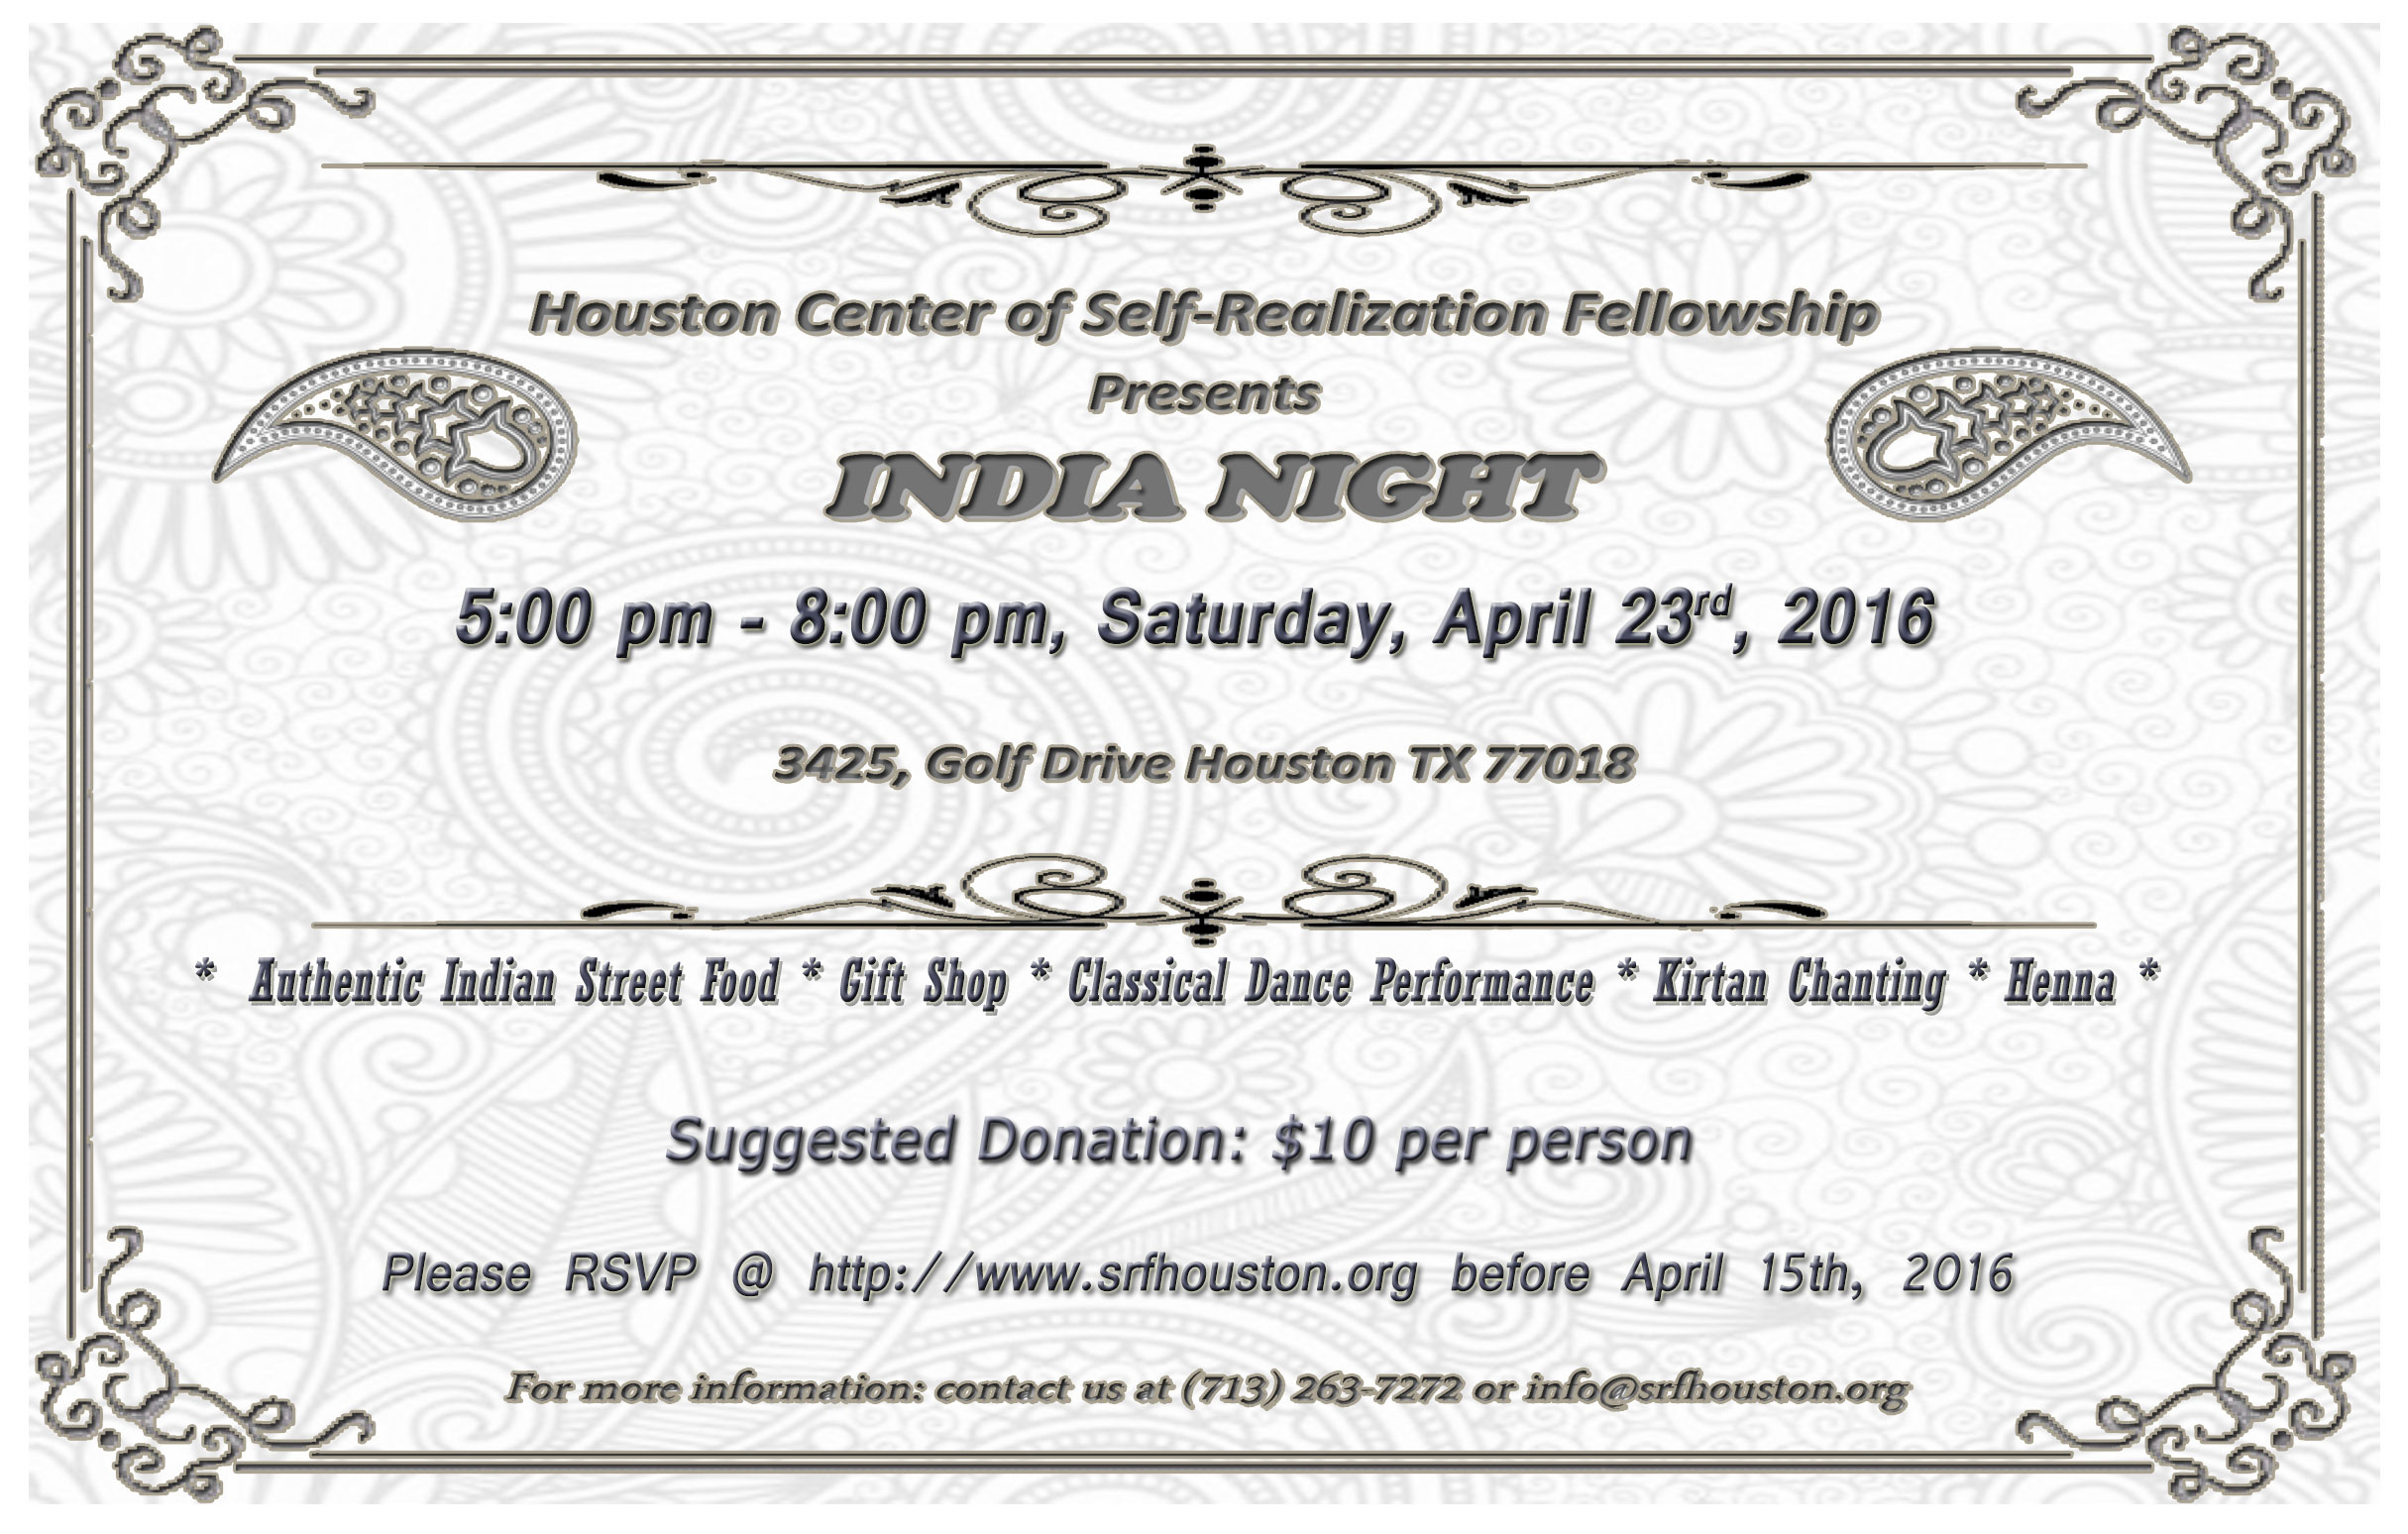 2016_HCSRF_IndiaNight_InvitationFlyer